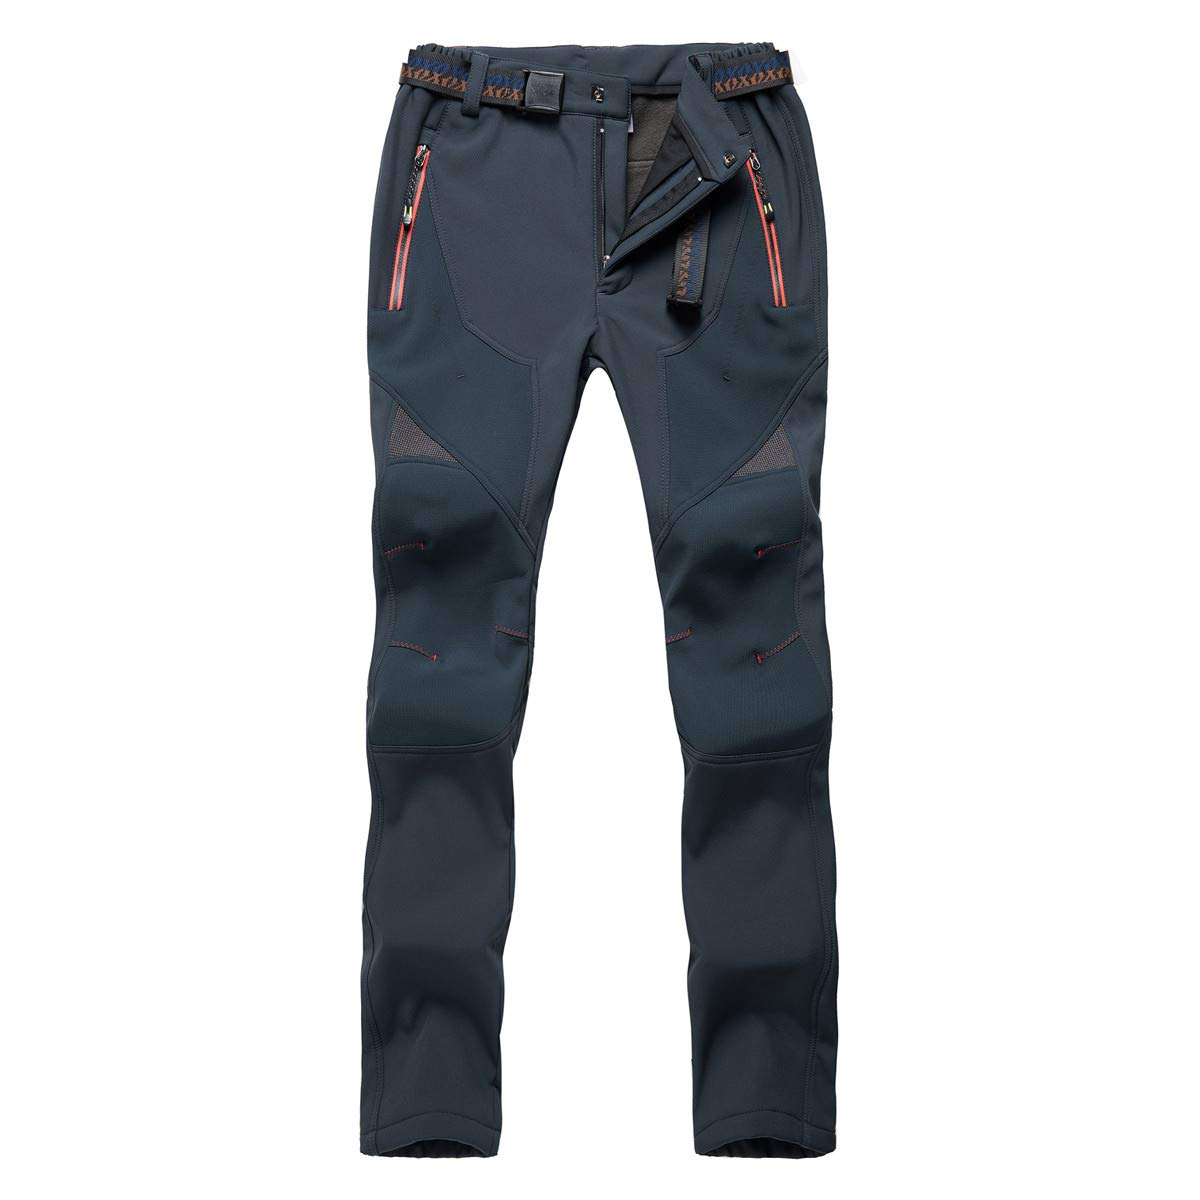 Aygience Women's Hiking Pants with Fleece Lined Snow Skiing Shell Pants Wind-Resistant Insulated Pants